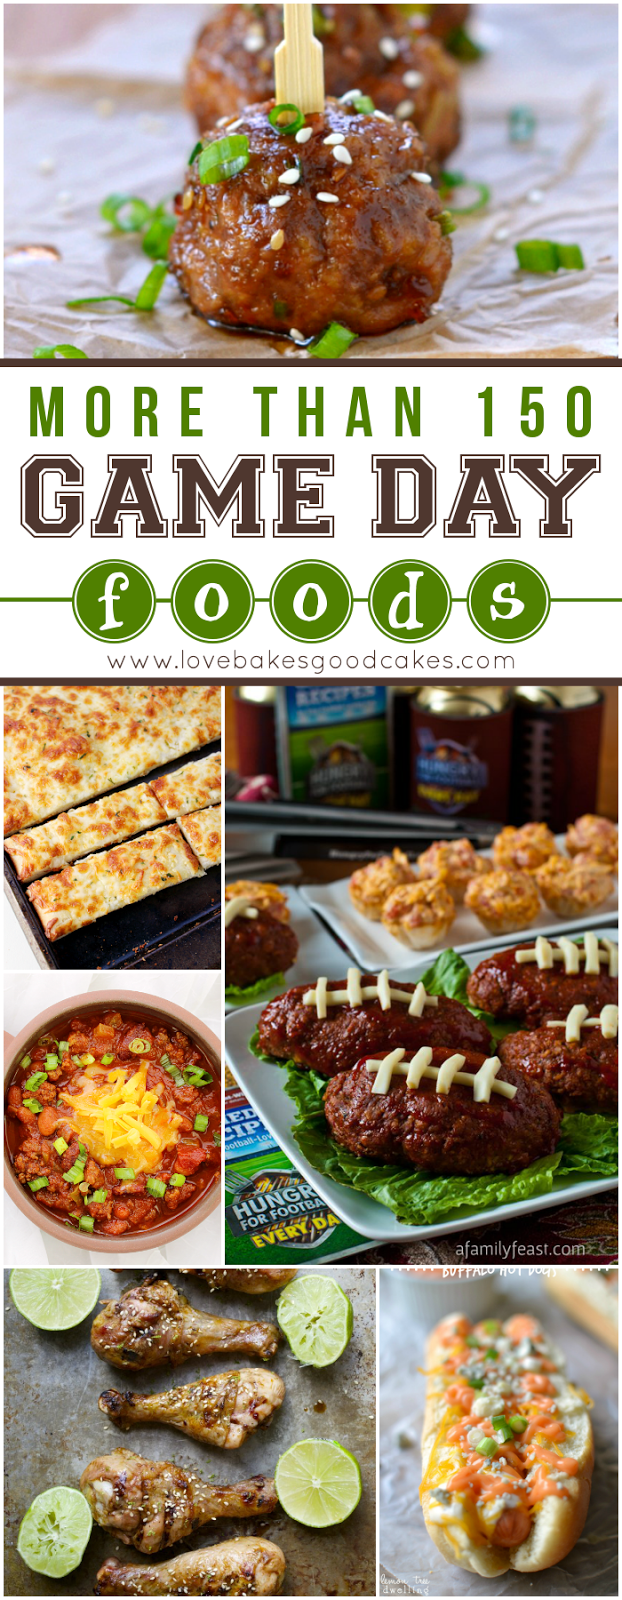 more than 150 Game Day Foods